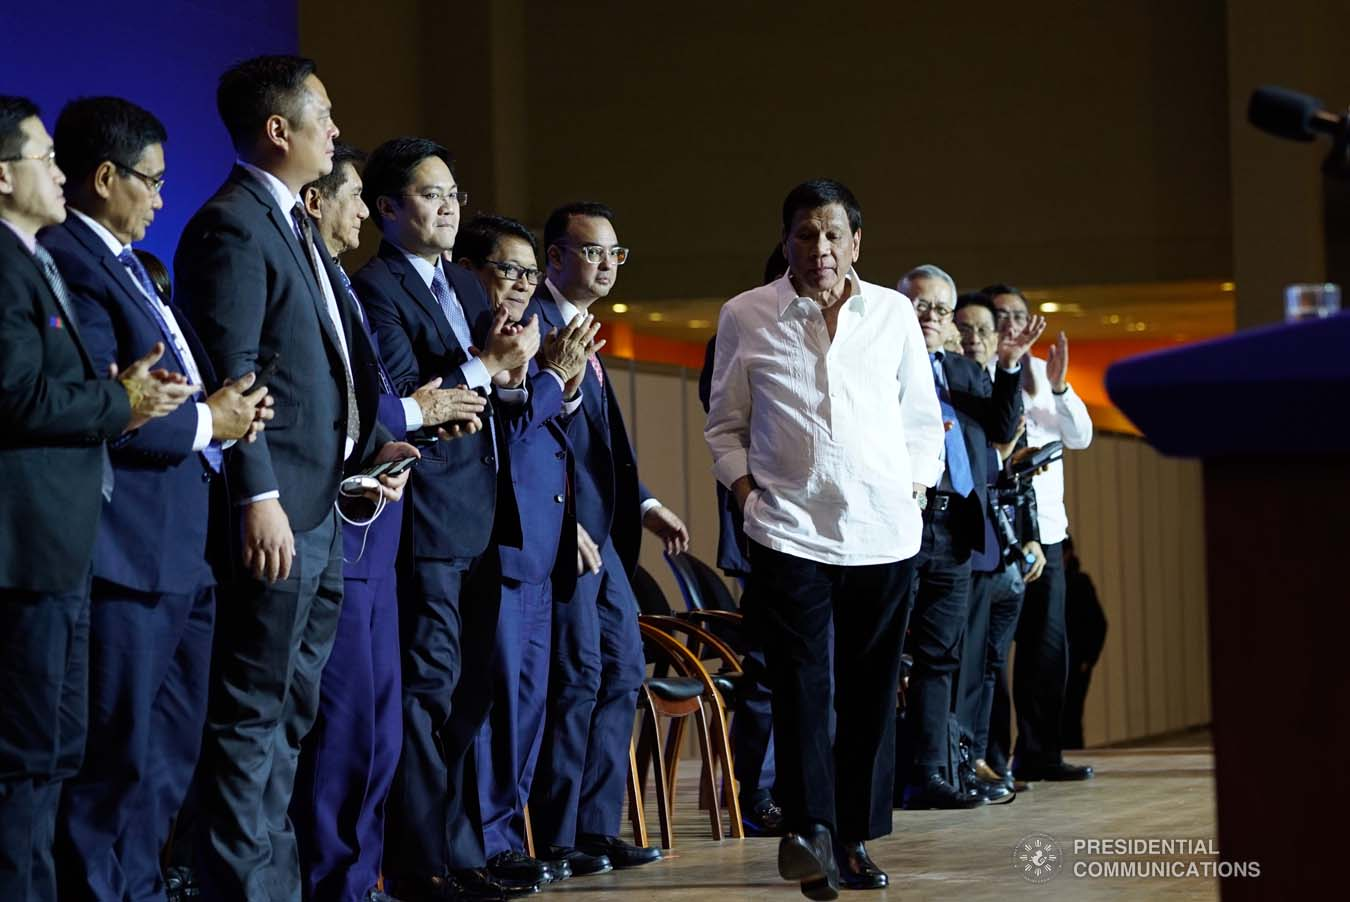 President Rodrigo Roa Duterte receives a warm round of applause from the members of his delegation as he prepares to deliver his speech during his meeting with the Filipino community at the Exhibition of Achievements of National Economy (VDNH) in Moscow on October 5, 2019. KING RODRIGUEZ/PRESIDENTIAL PHOTO